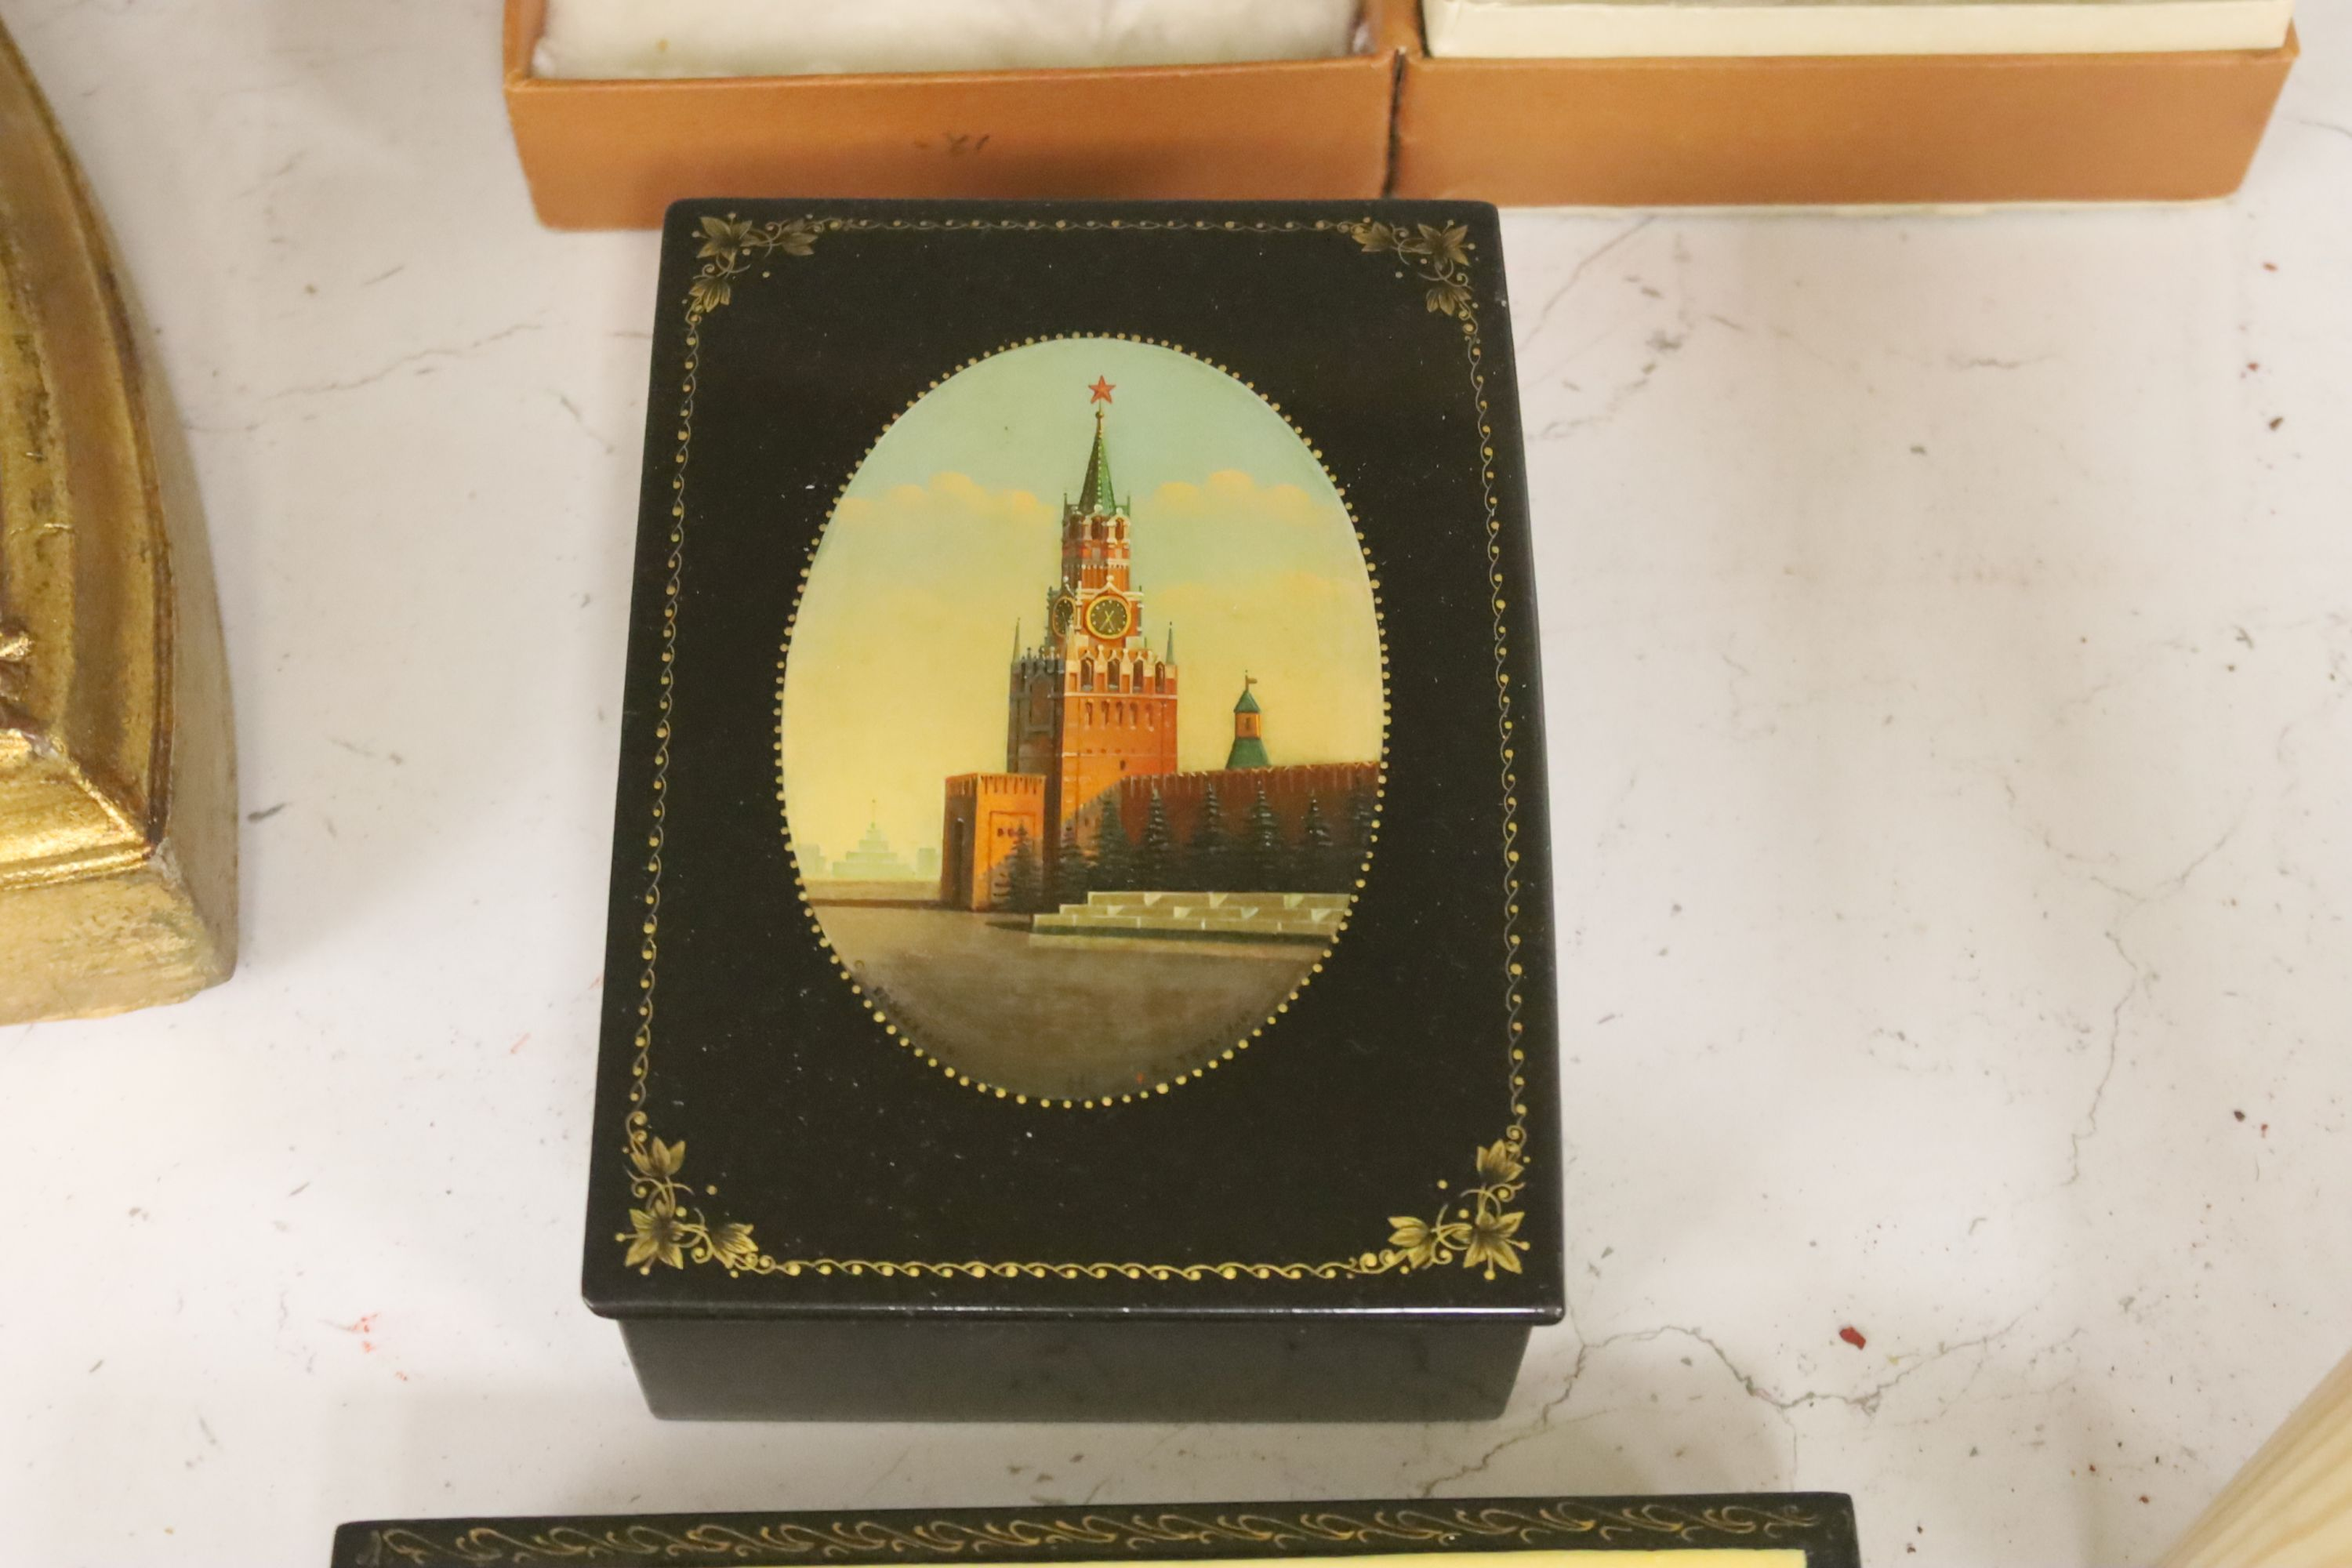 Six Russian Papier mache boxes, each decorated with churches or cathedrals, largest 17 cm - Image 5 of 6